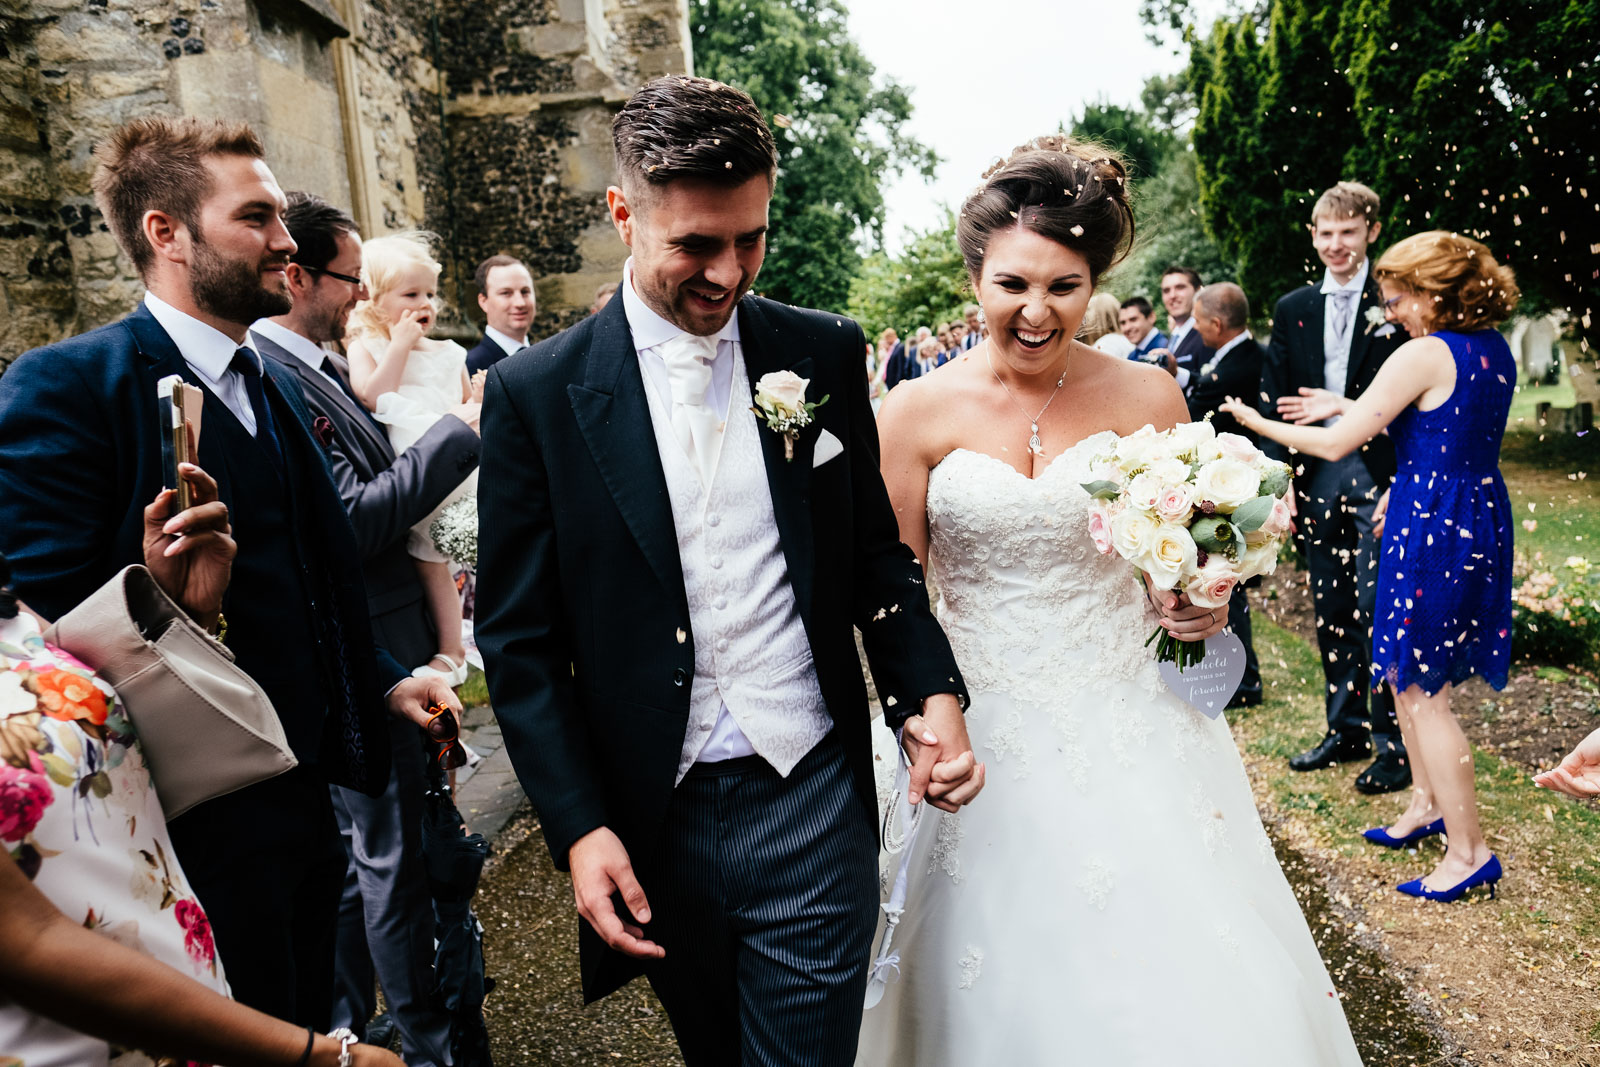 A bride and groom in confetti at Chinnor Church. Photo by Sam and Steve Photography